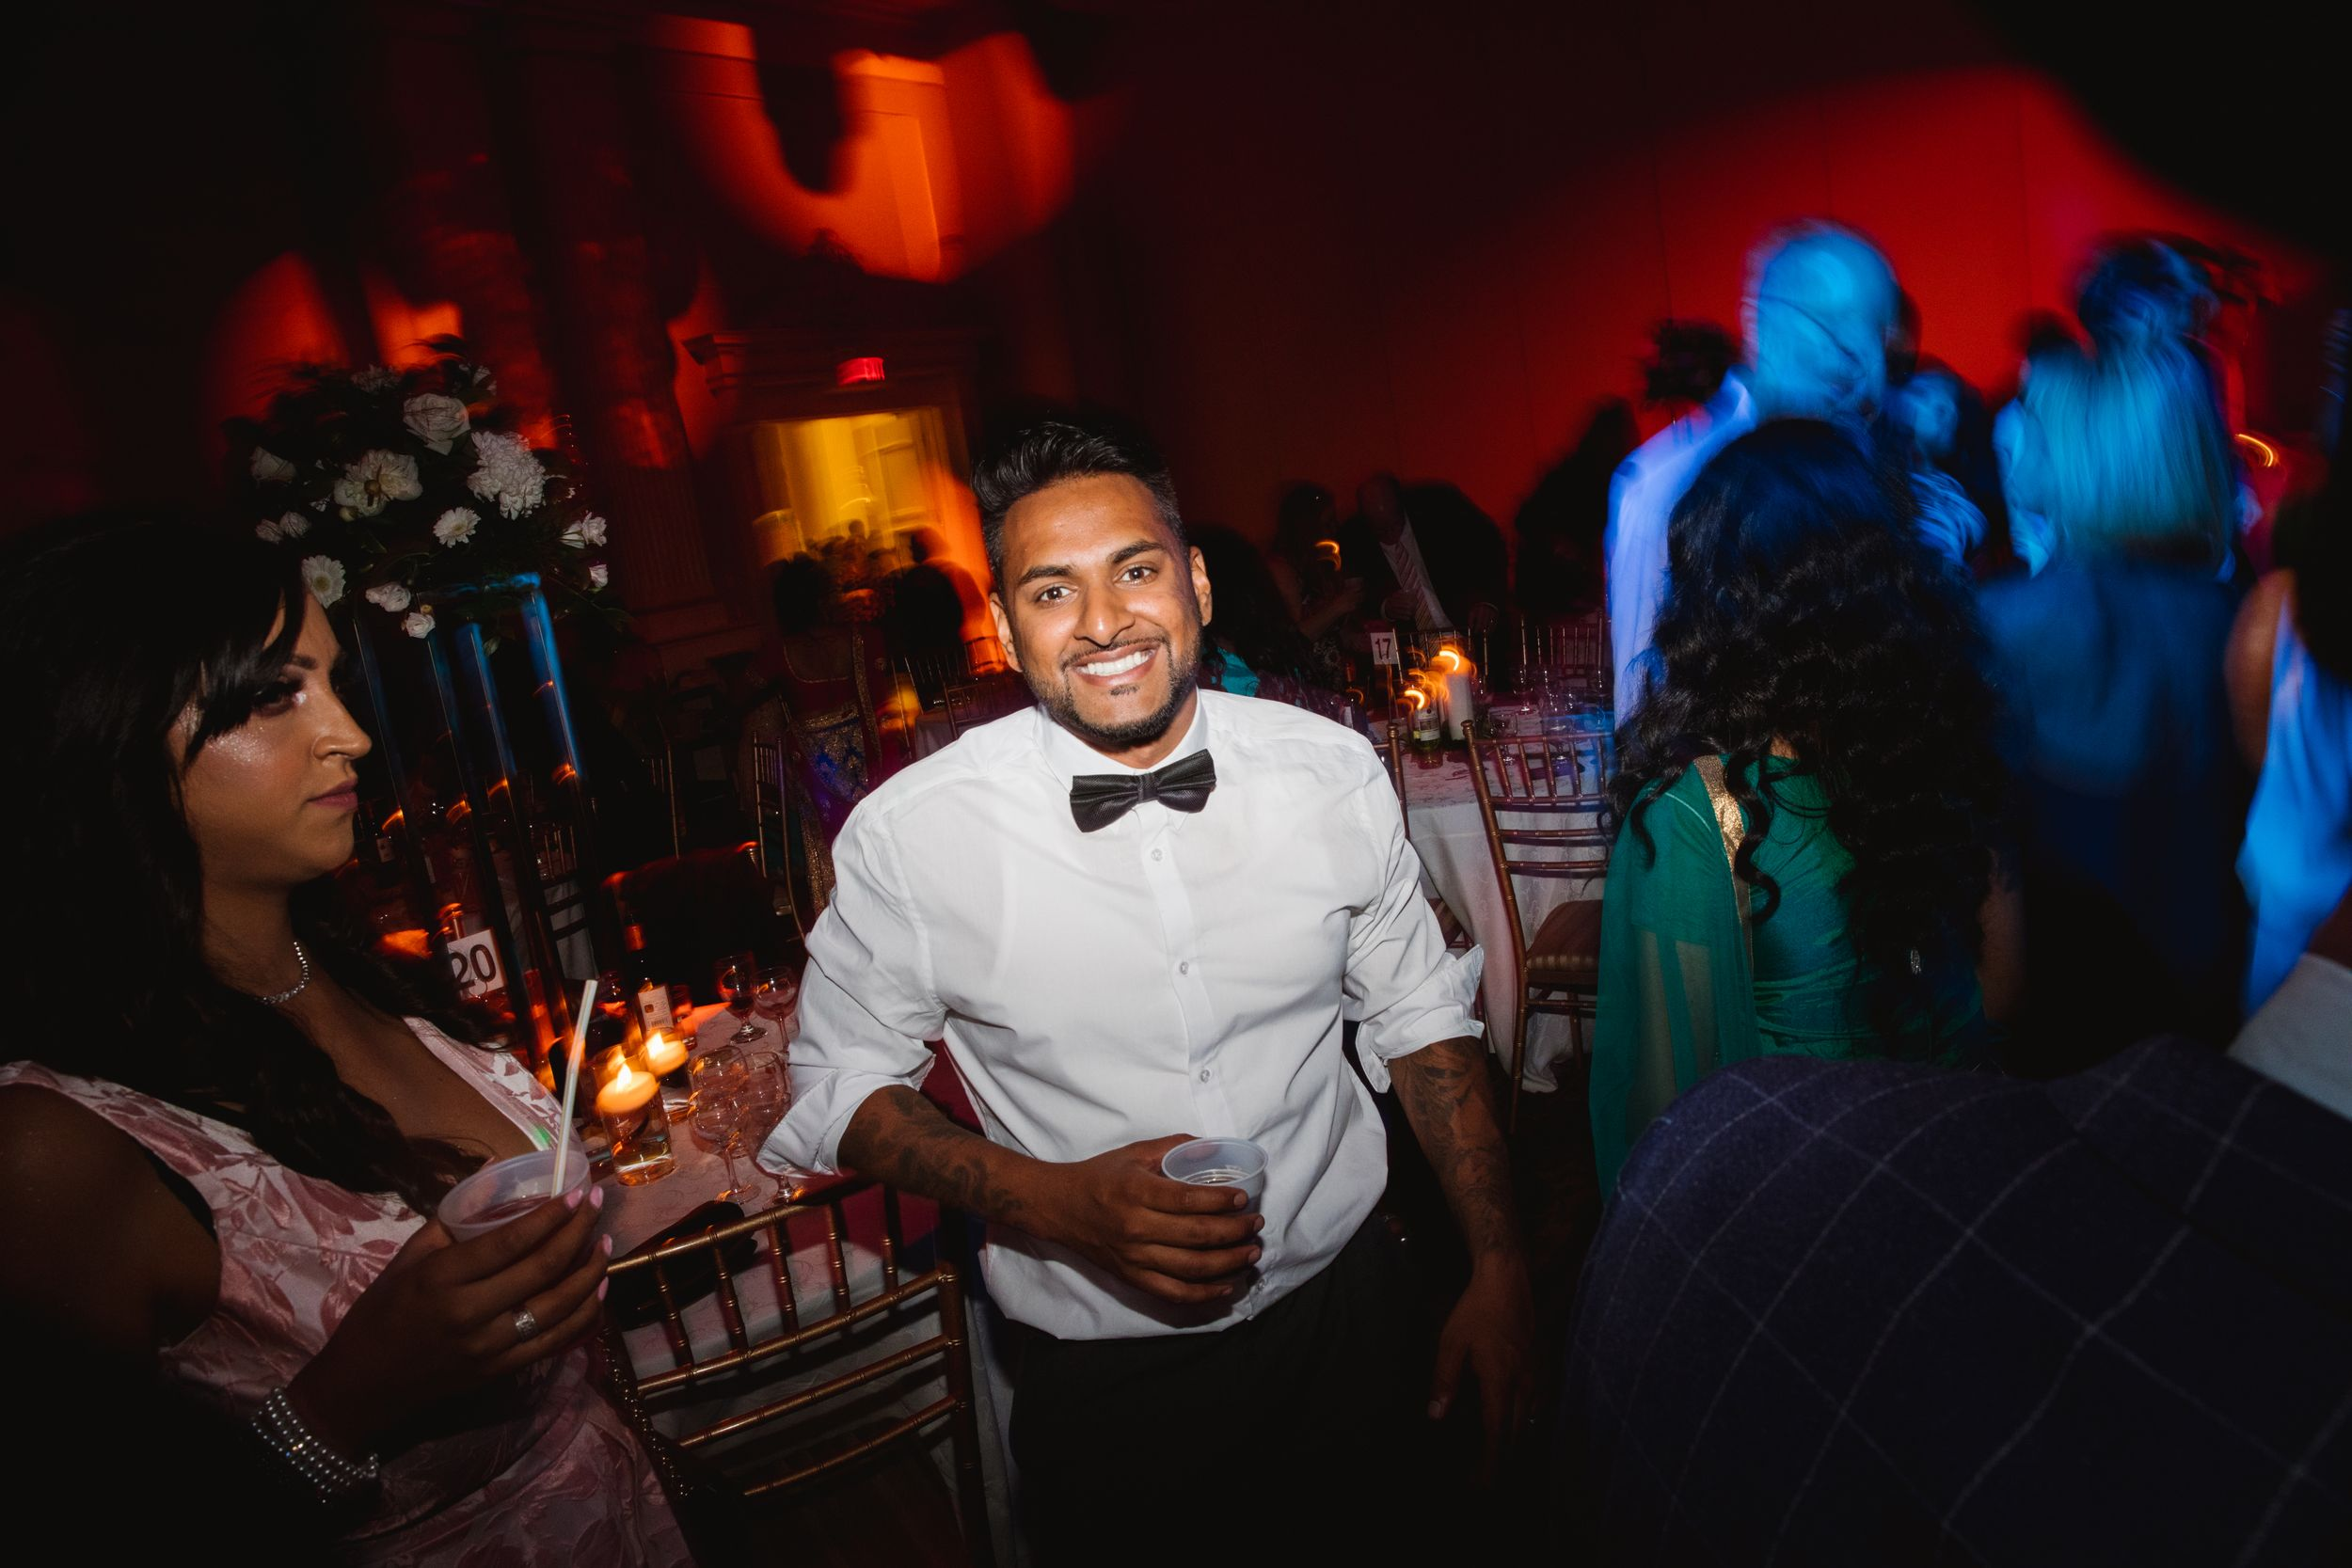 wedding party time groomsman smiling holding a drink